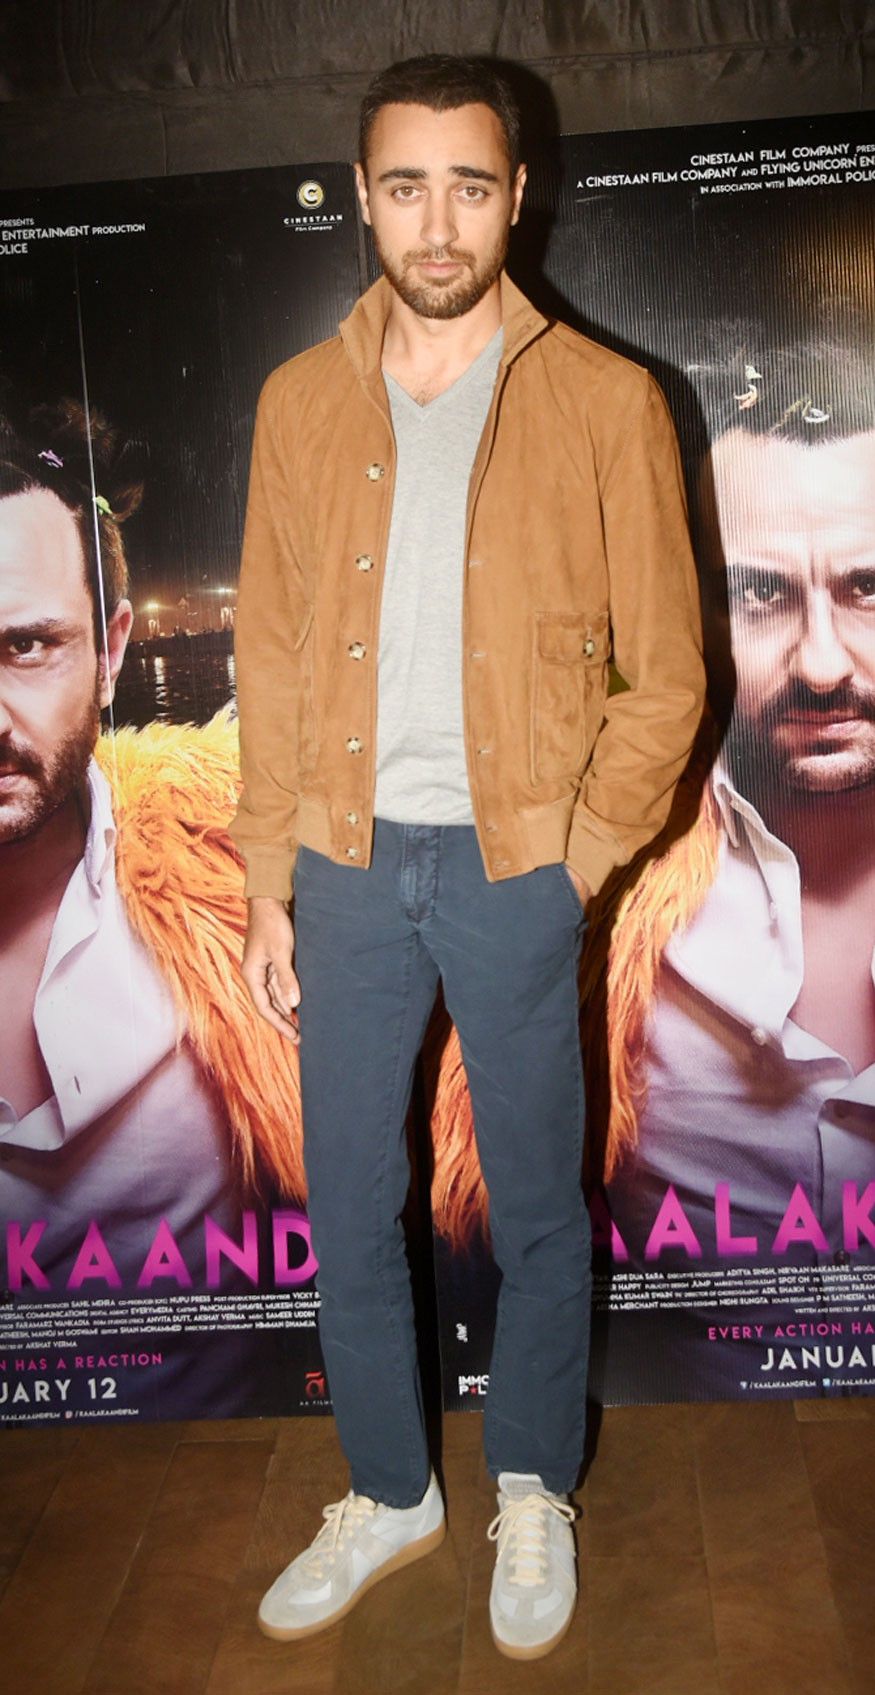 Shruti Haasan,Akshara Haasan,Imran Khan,Akshay Oberoi,Shobita Dhulipala,Kunaal Roy Kapur,Kaalakaandi,Kaalakaandi special screening,celebs at Kaalakaandi special screening,Kaalakaandi special screening pics,Kaalakaandi special screening images,Kaalakaandi